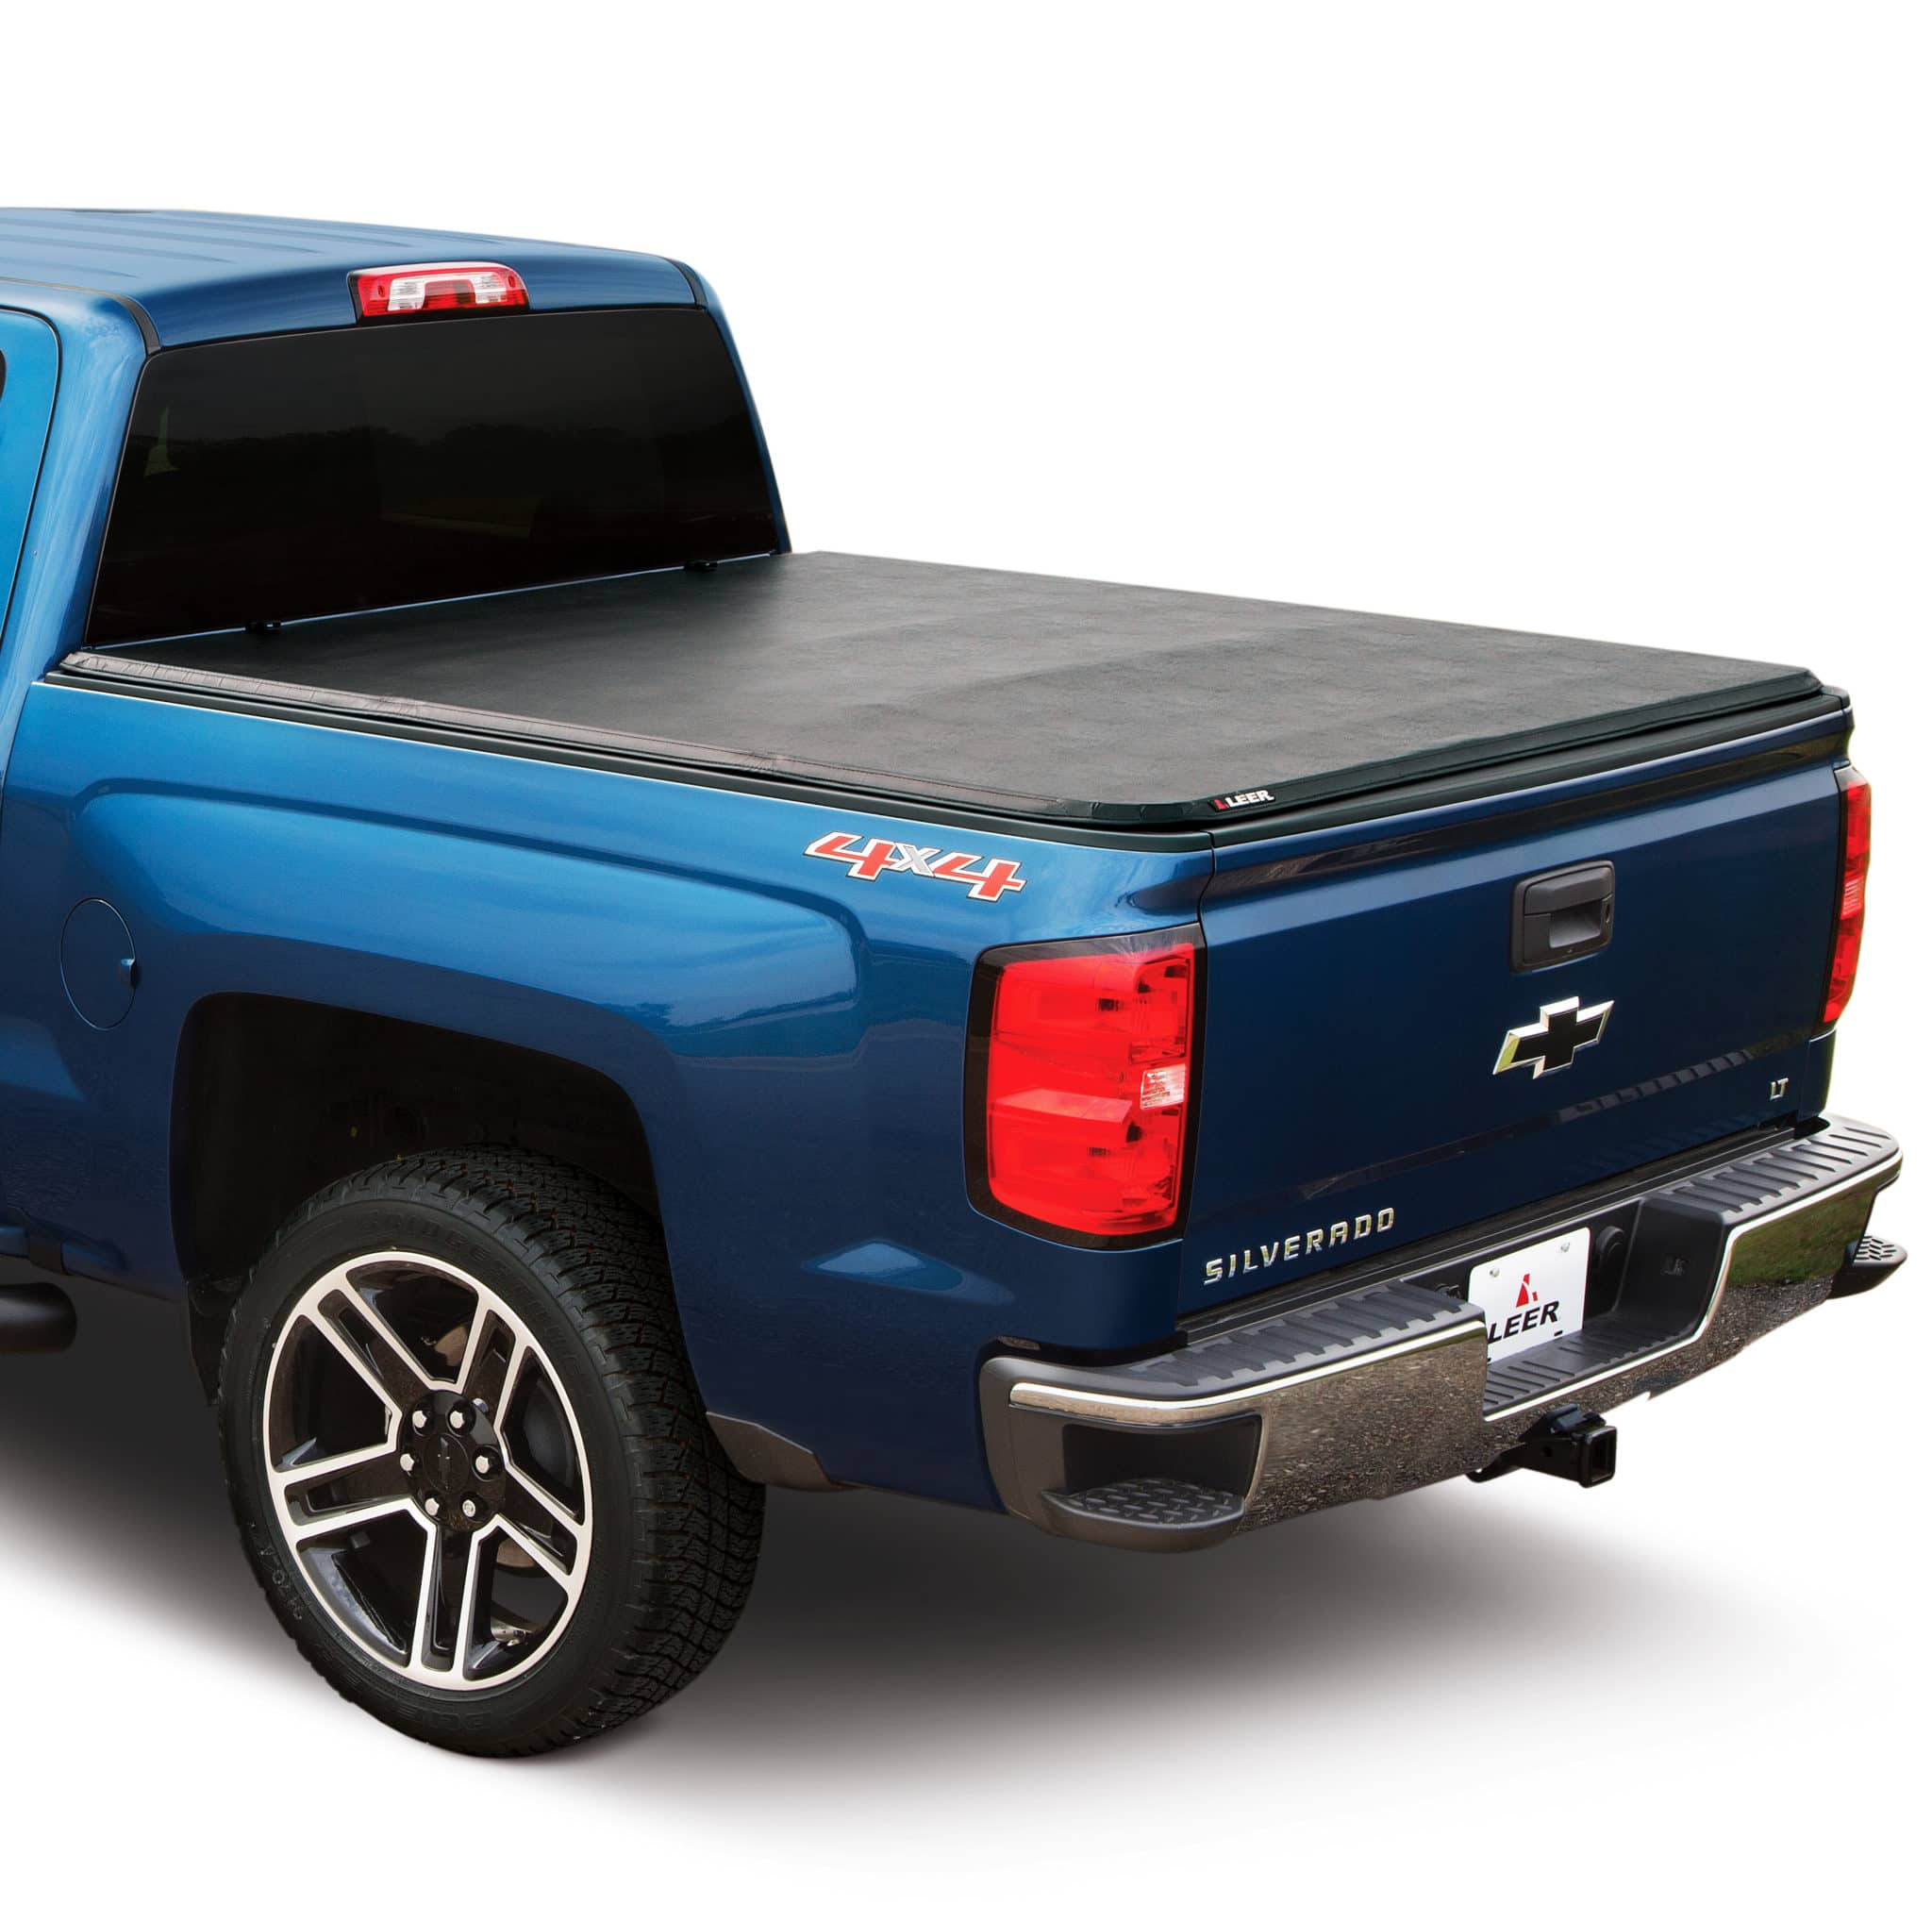 Leer Latitude Soft Tri Folding Truck Bed Covers Rhr Swag